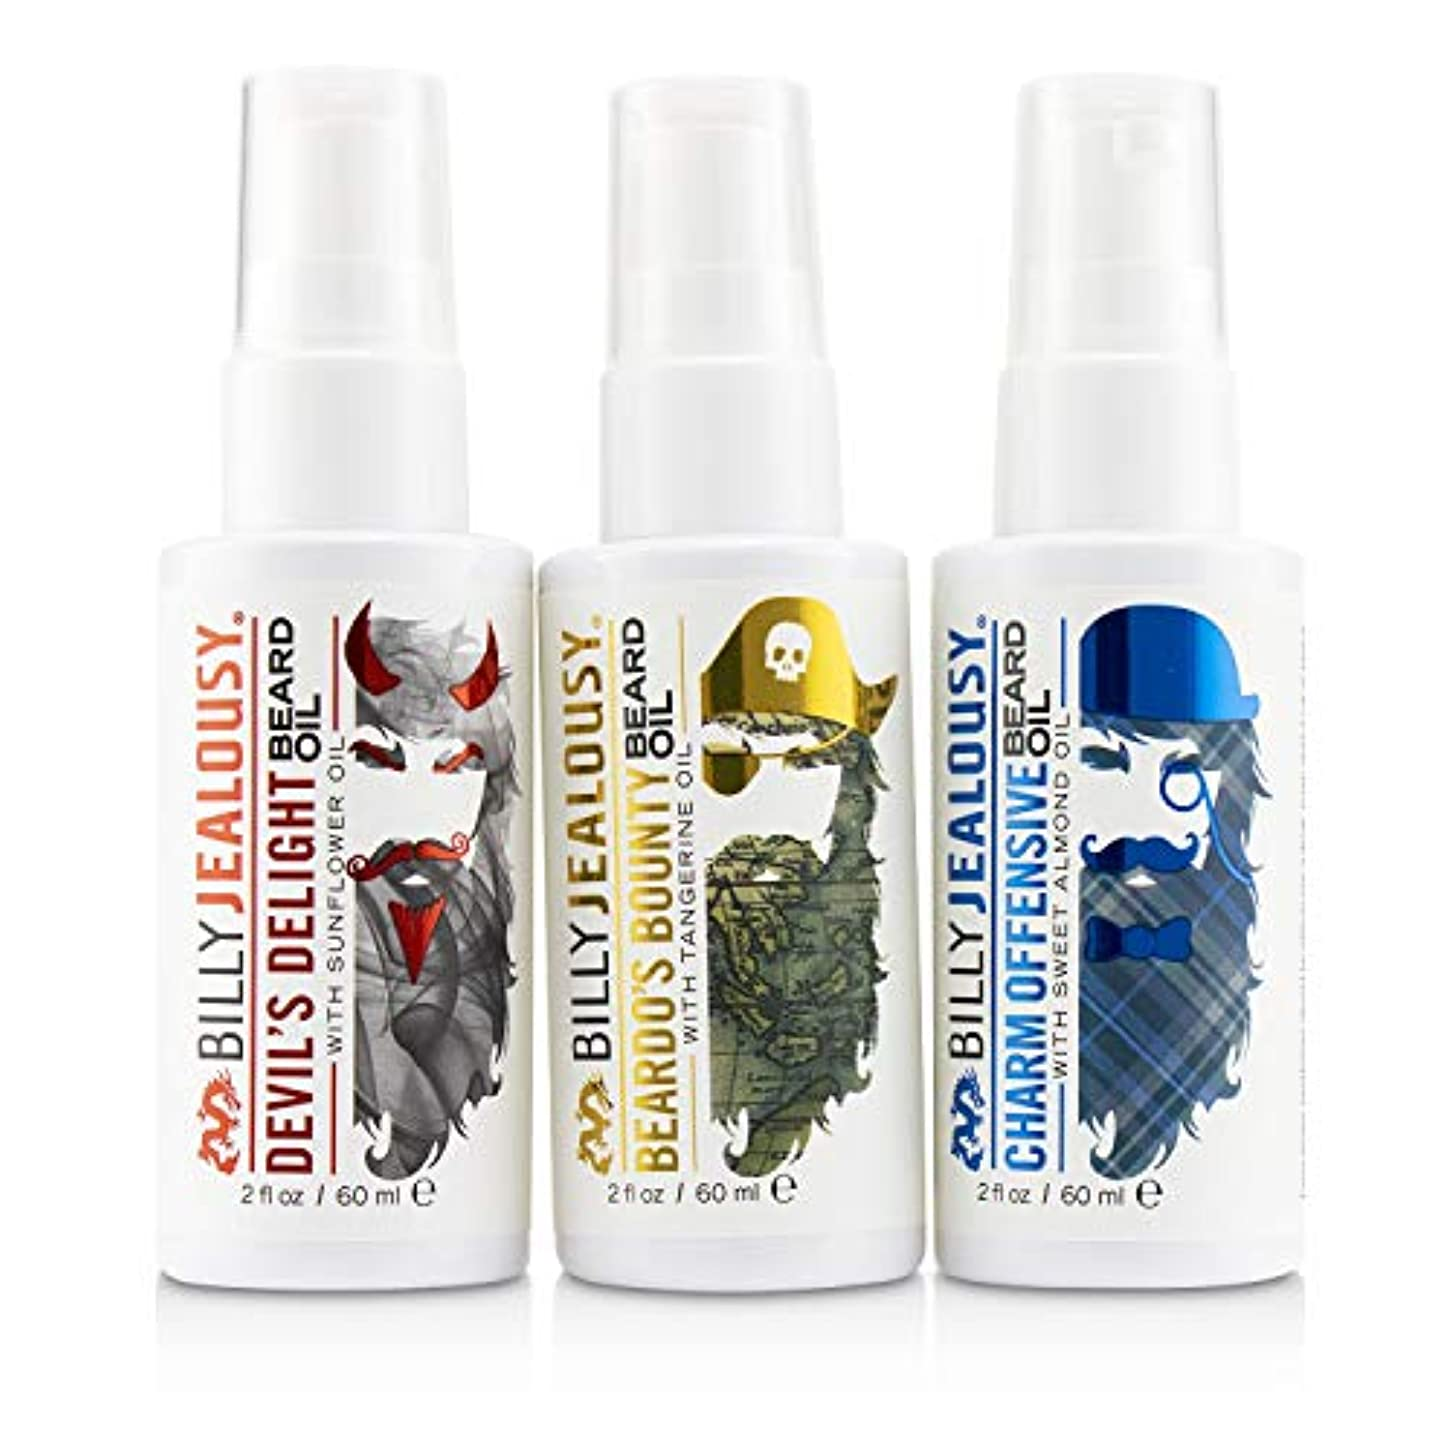 ぐるぐる水星マチュピチュビリージェラシー 3 Amigos Beard Oil Trio Set : 1x Beardo's Bounty 60ml + 1x Devil's Delight 60ml + Charm Offensive 3pcs...